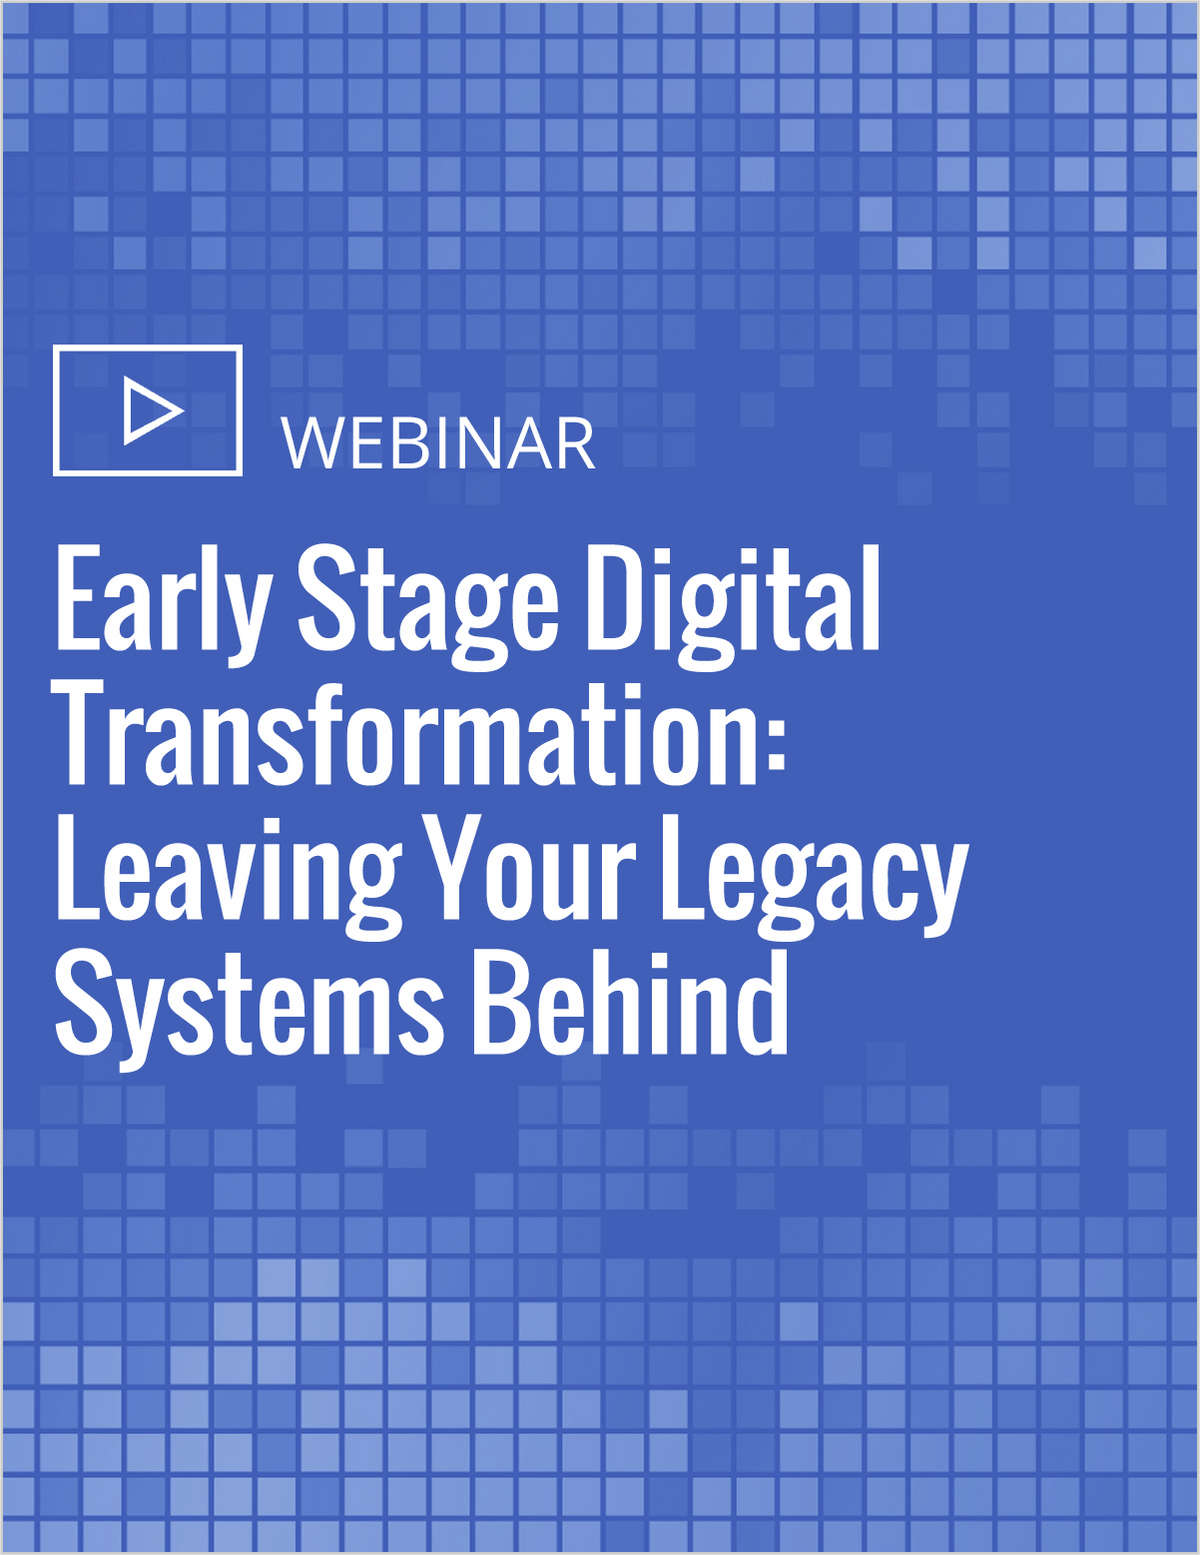 Early Stage Digital Transformation: Leaving Your Legacy Systems Behind